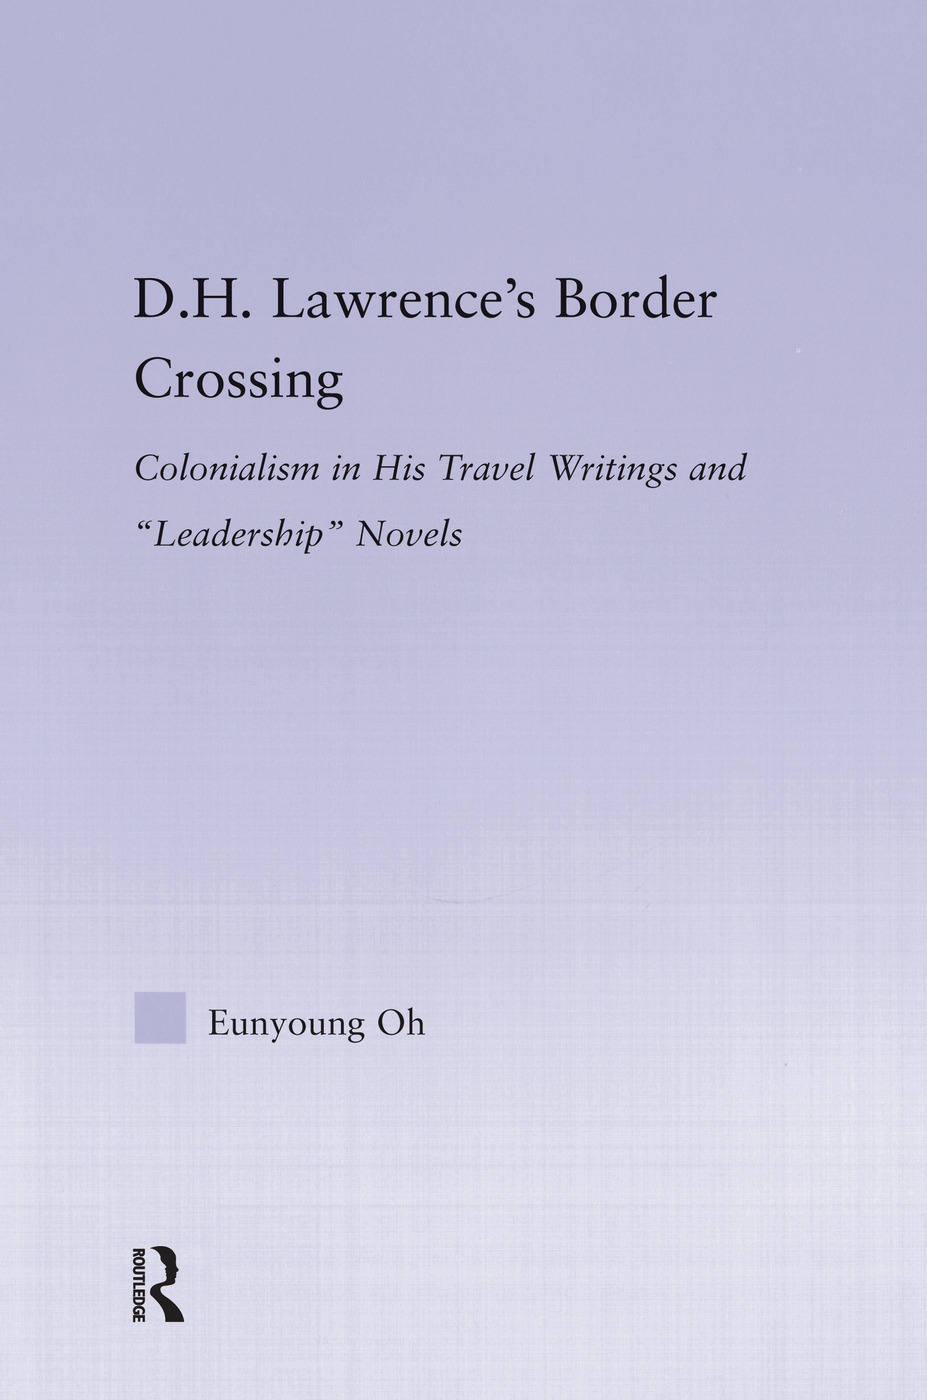 D.H. Lawrence's Border Crossing: Colonialism in His Travel Writing and Leadership Novels, 1st Edition (Paperback) book cover